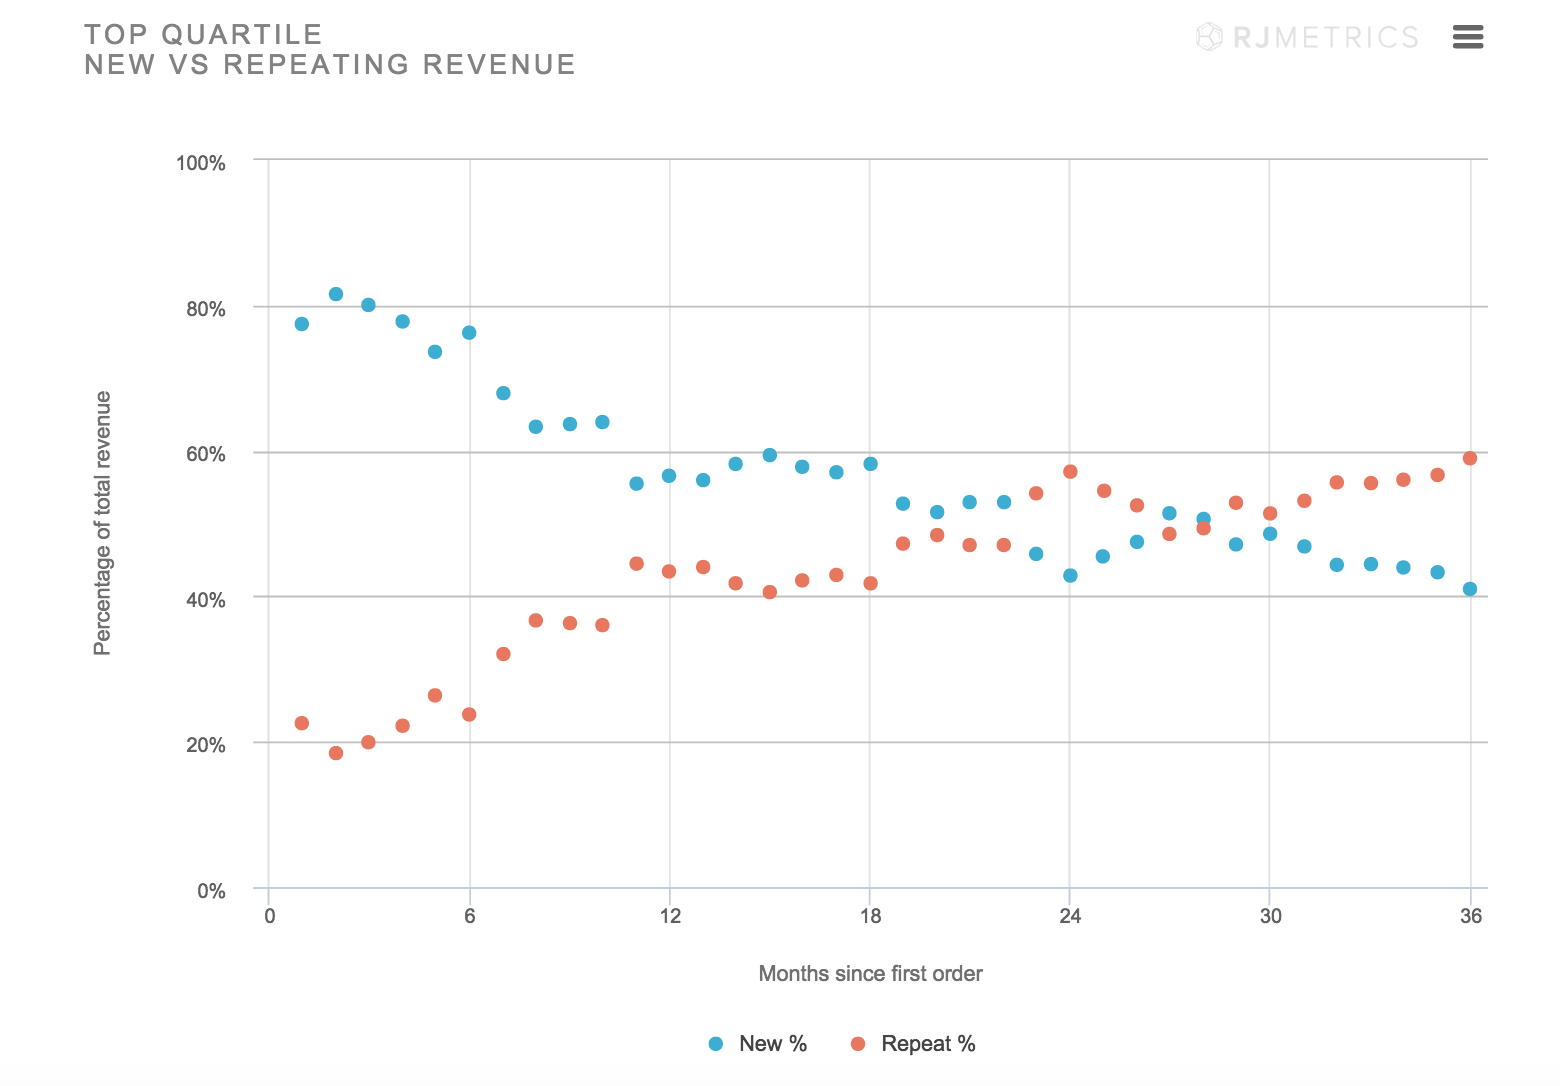 New vs Recurring Revenue Of Top Ecommerce Companies - Customer Lifetime Value